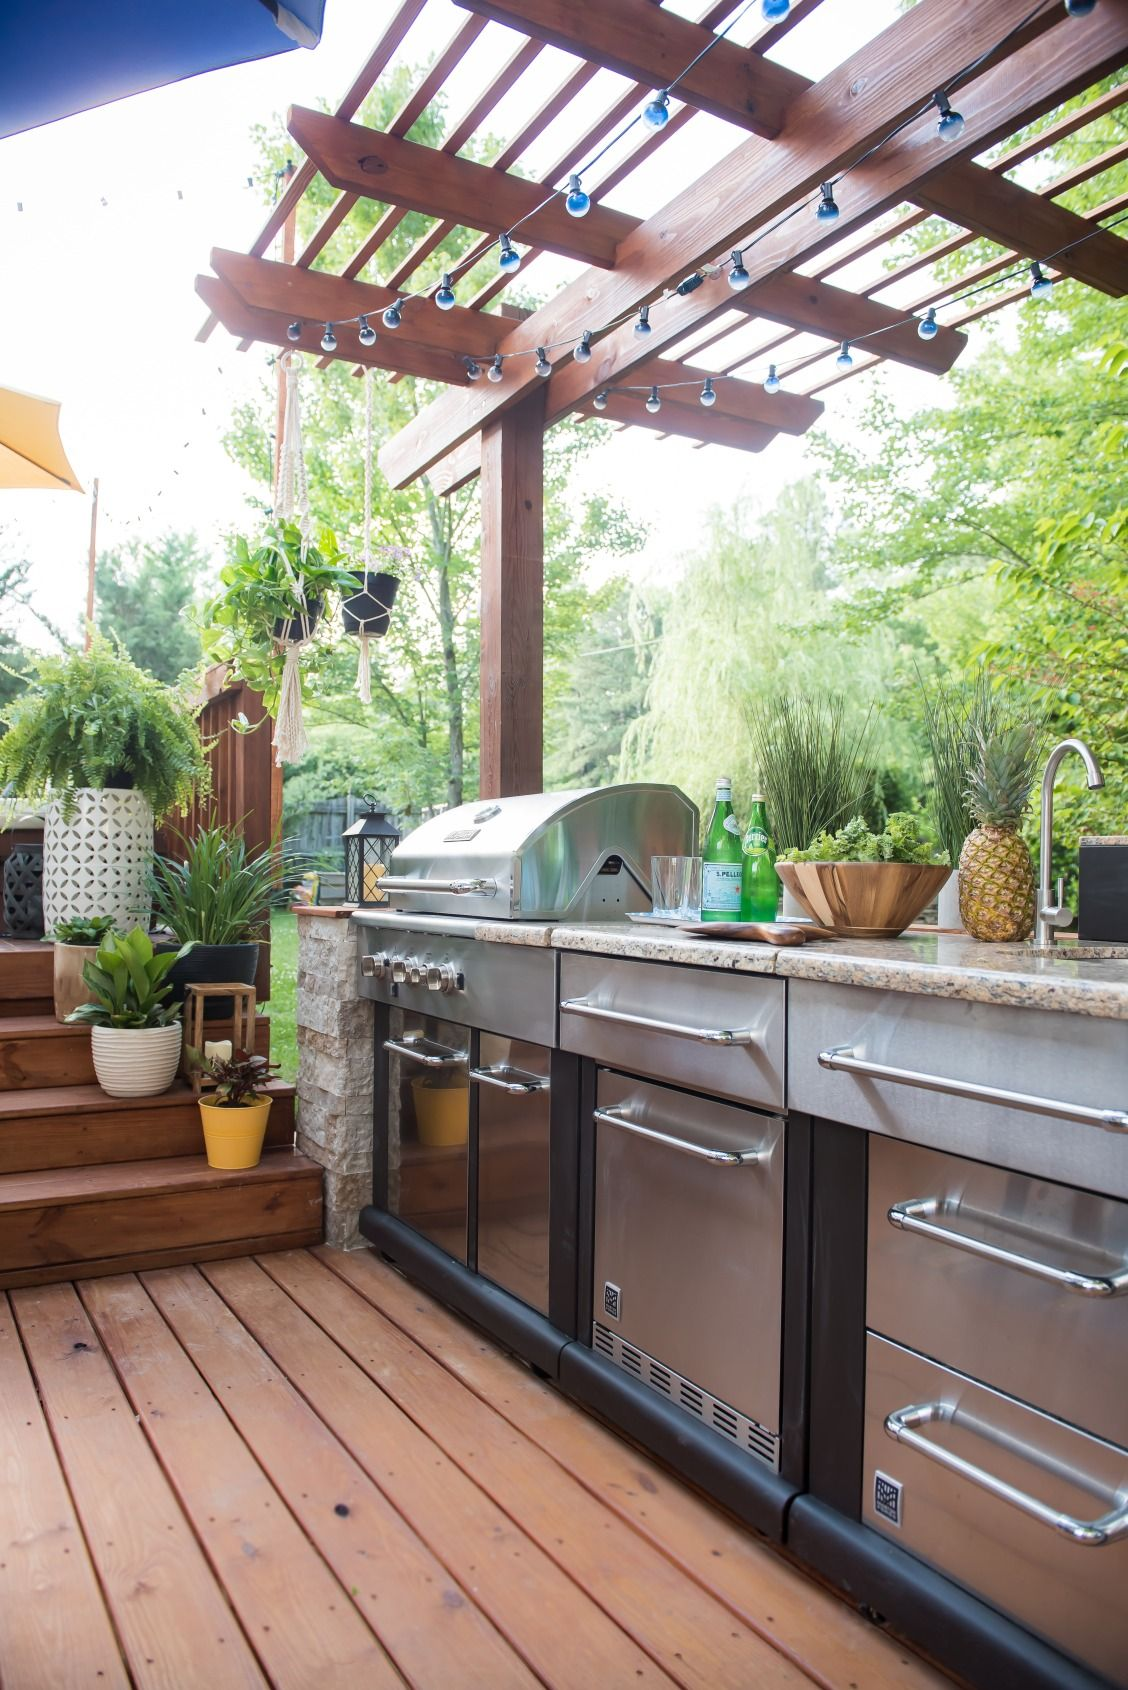 amazing outdoor kitchen you want to see | patio paradise | pinterest